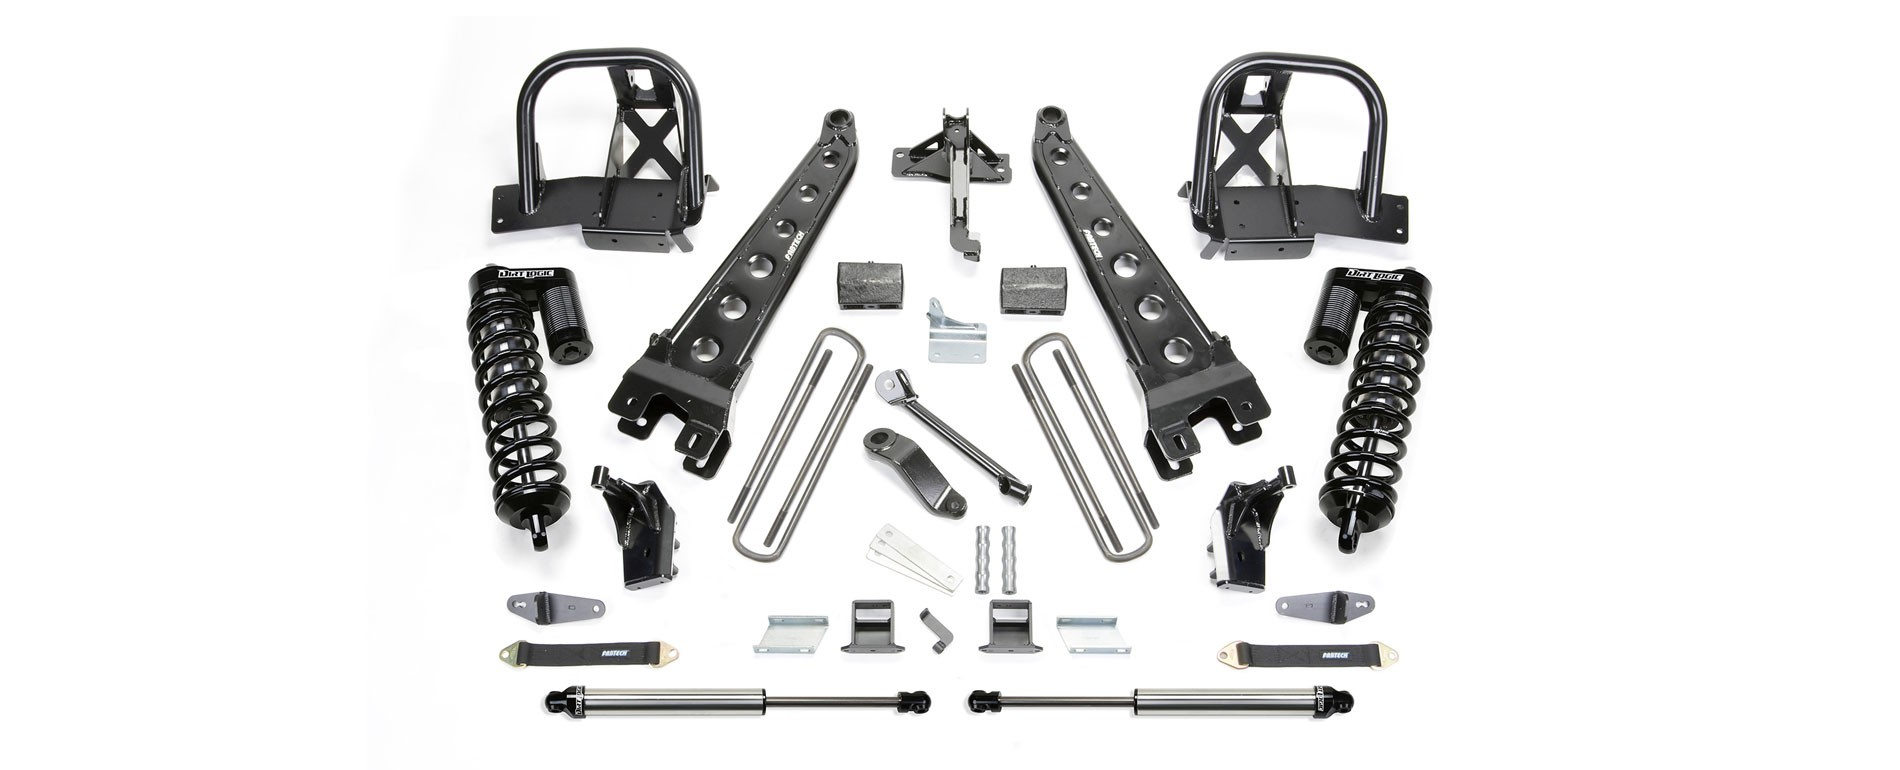 "FABTECH  2011-16  4"" Radius Arm System w/Dirt Logic 4.0 Coilovers & Rear Dirt Logic Shocks - Ford F250 4WD"